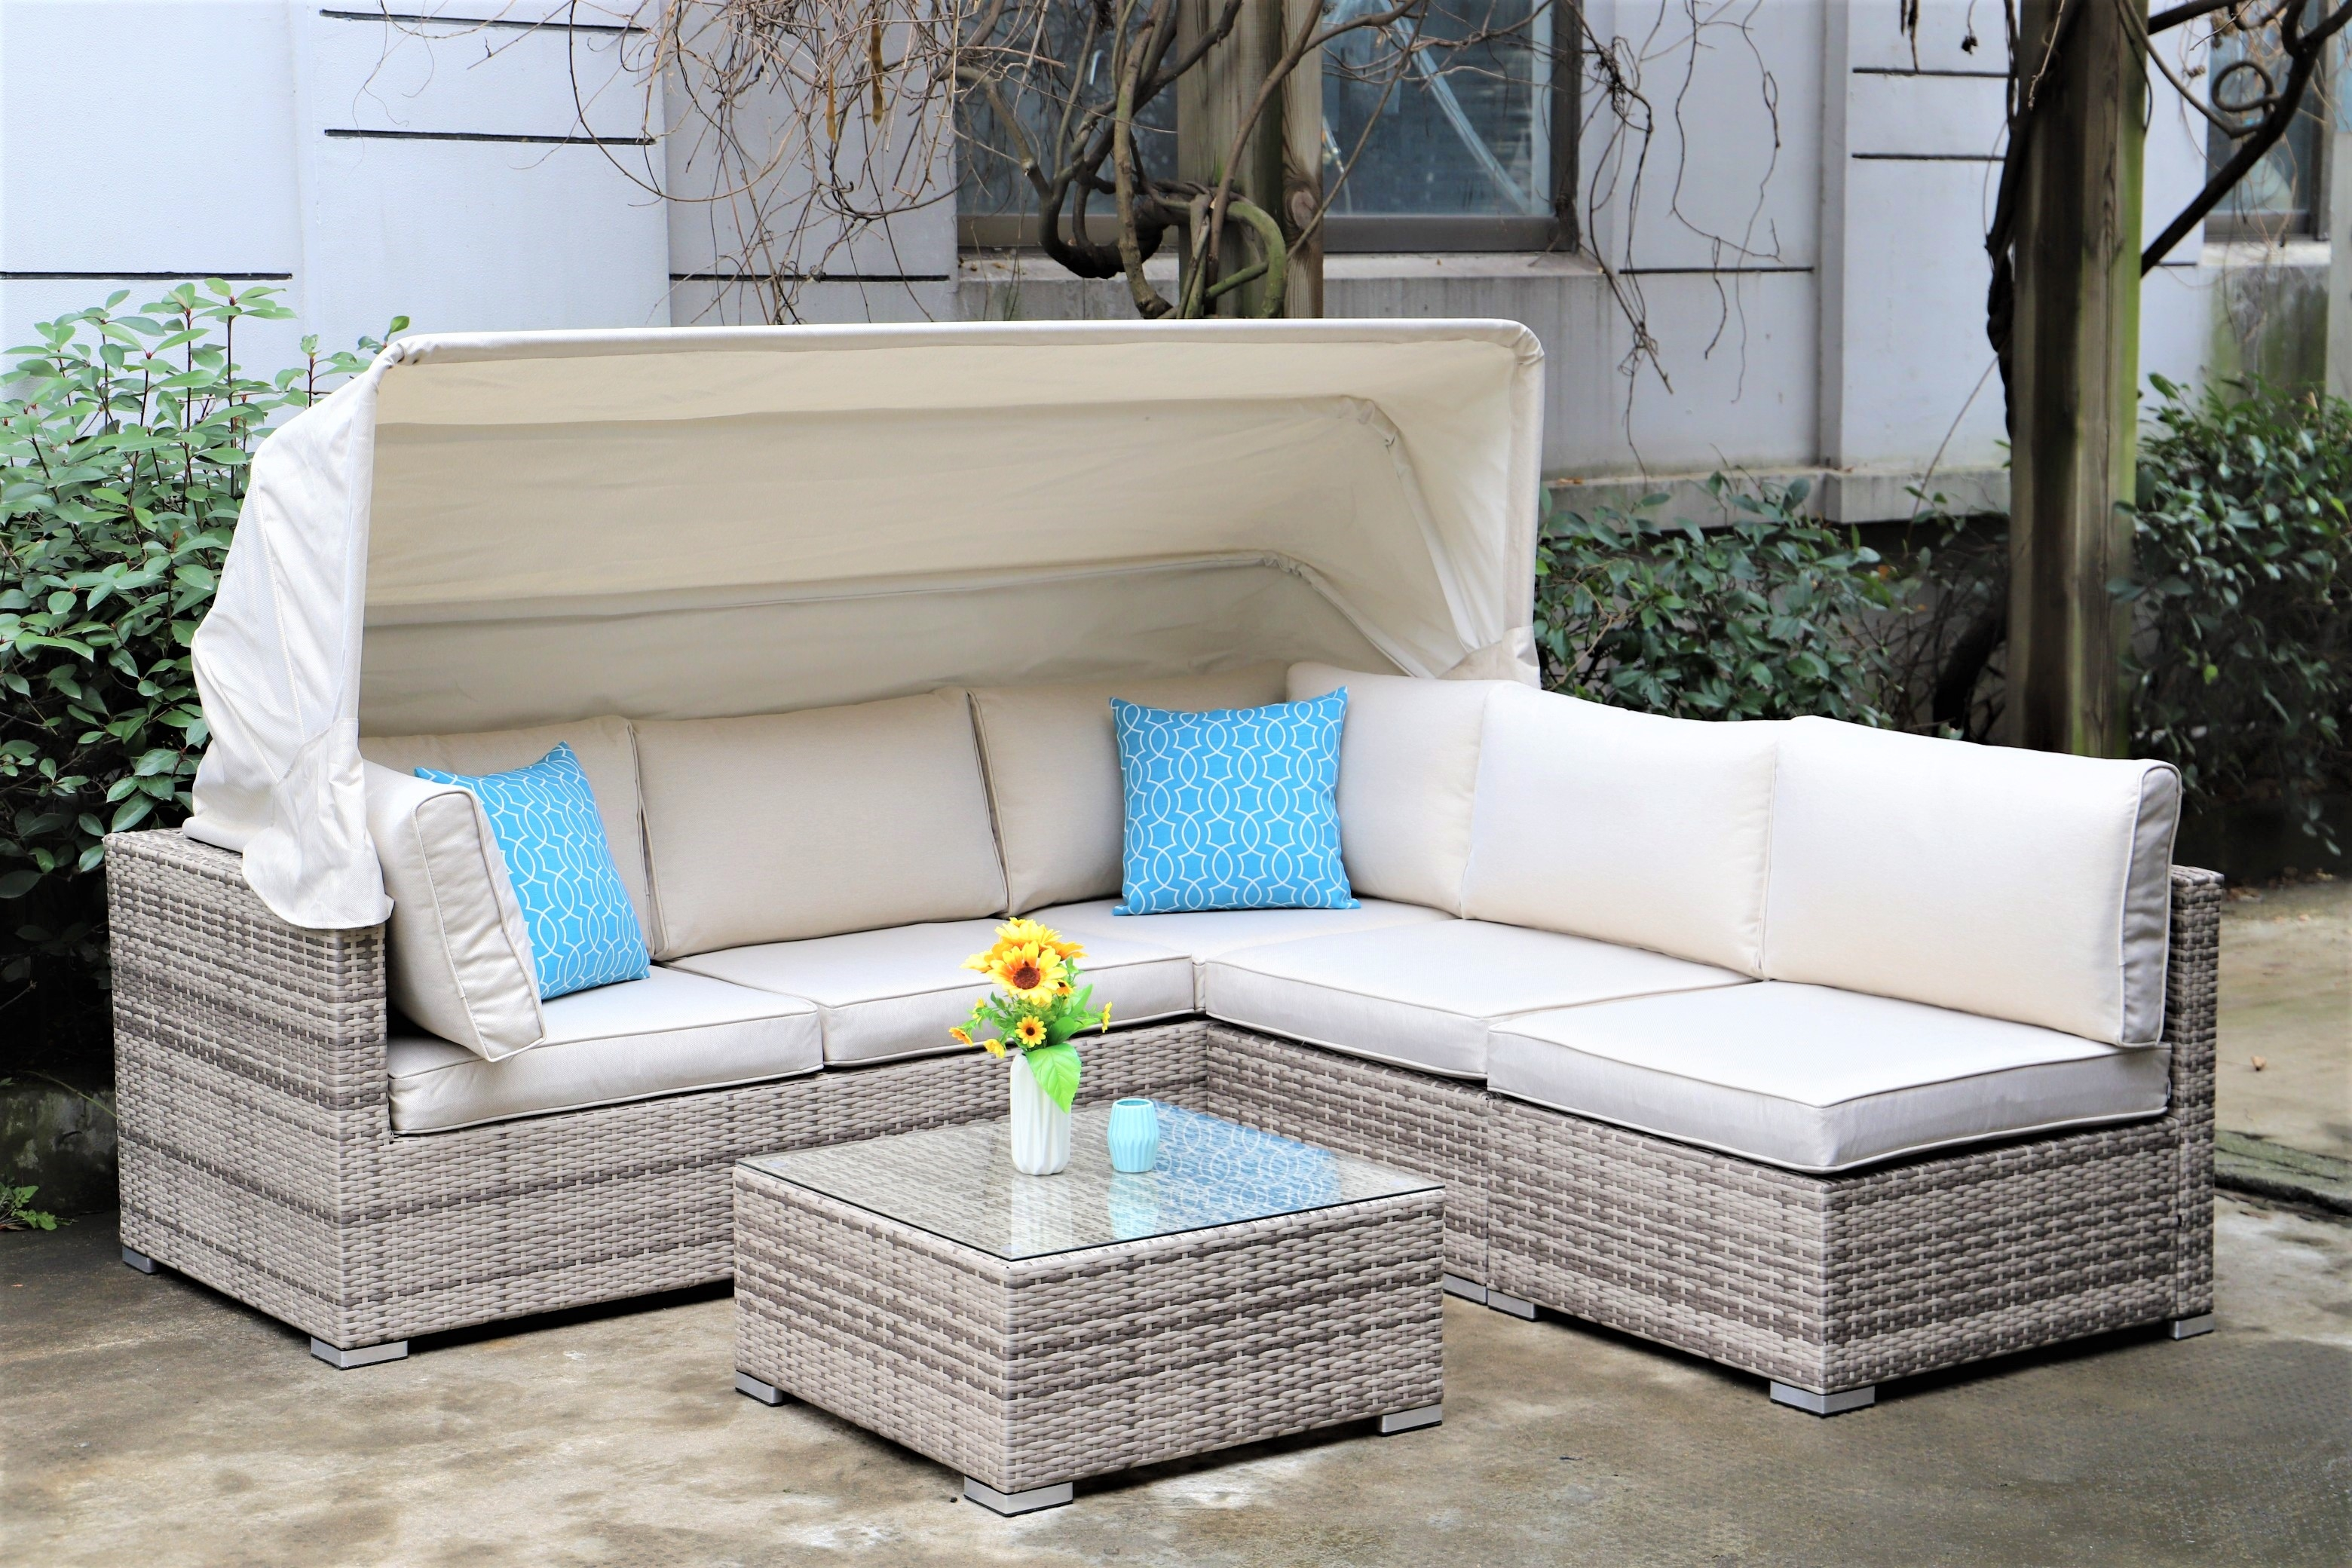 Champagne Corsair Canopy Sofa Set with Coffee Table